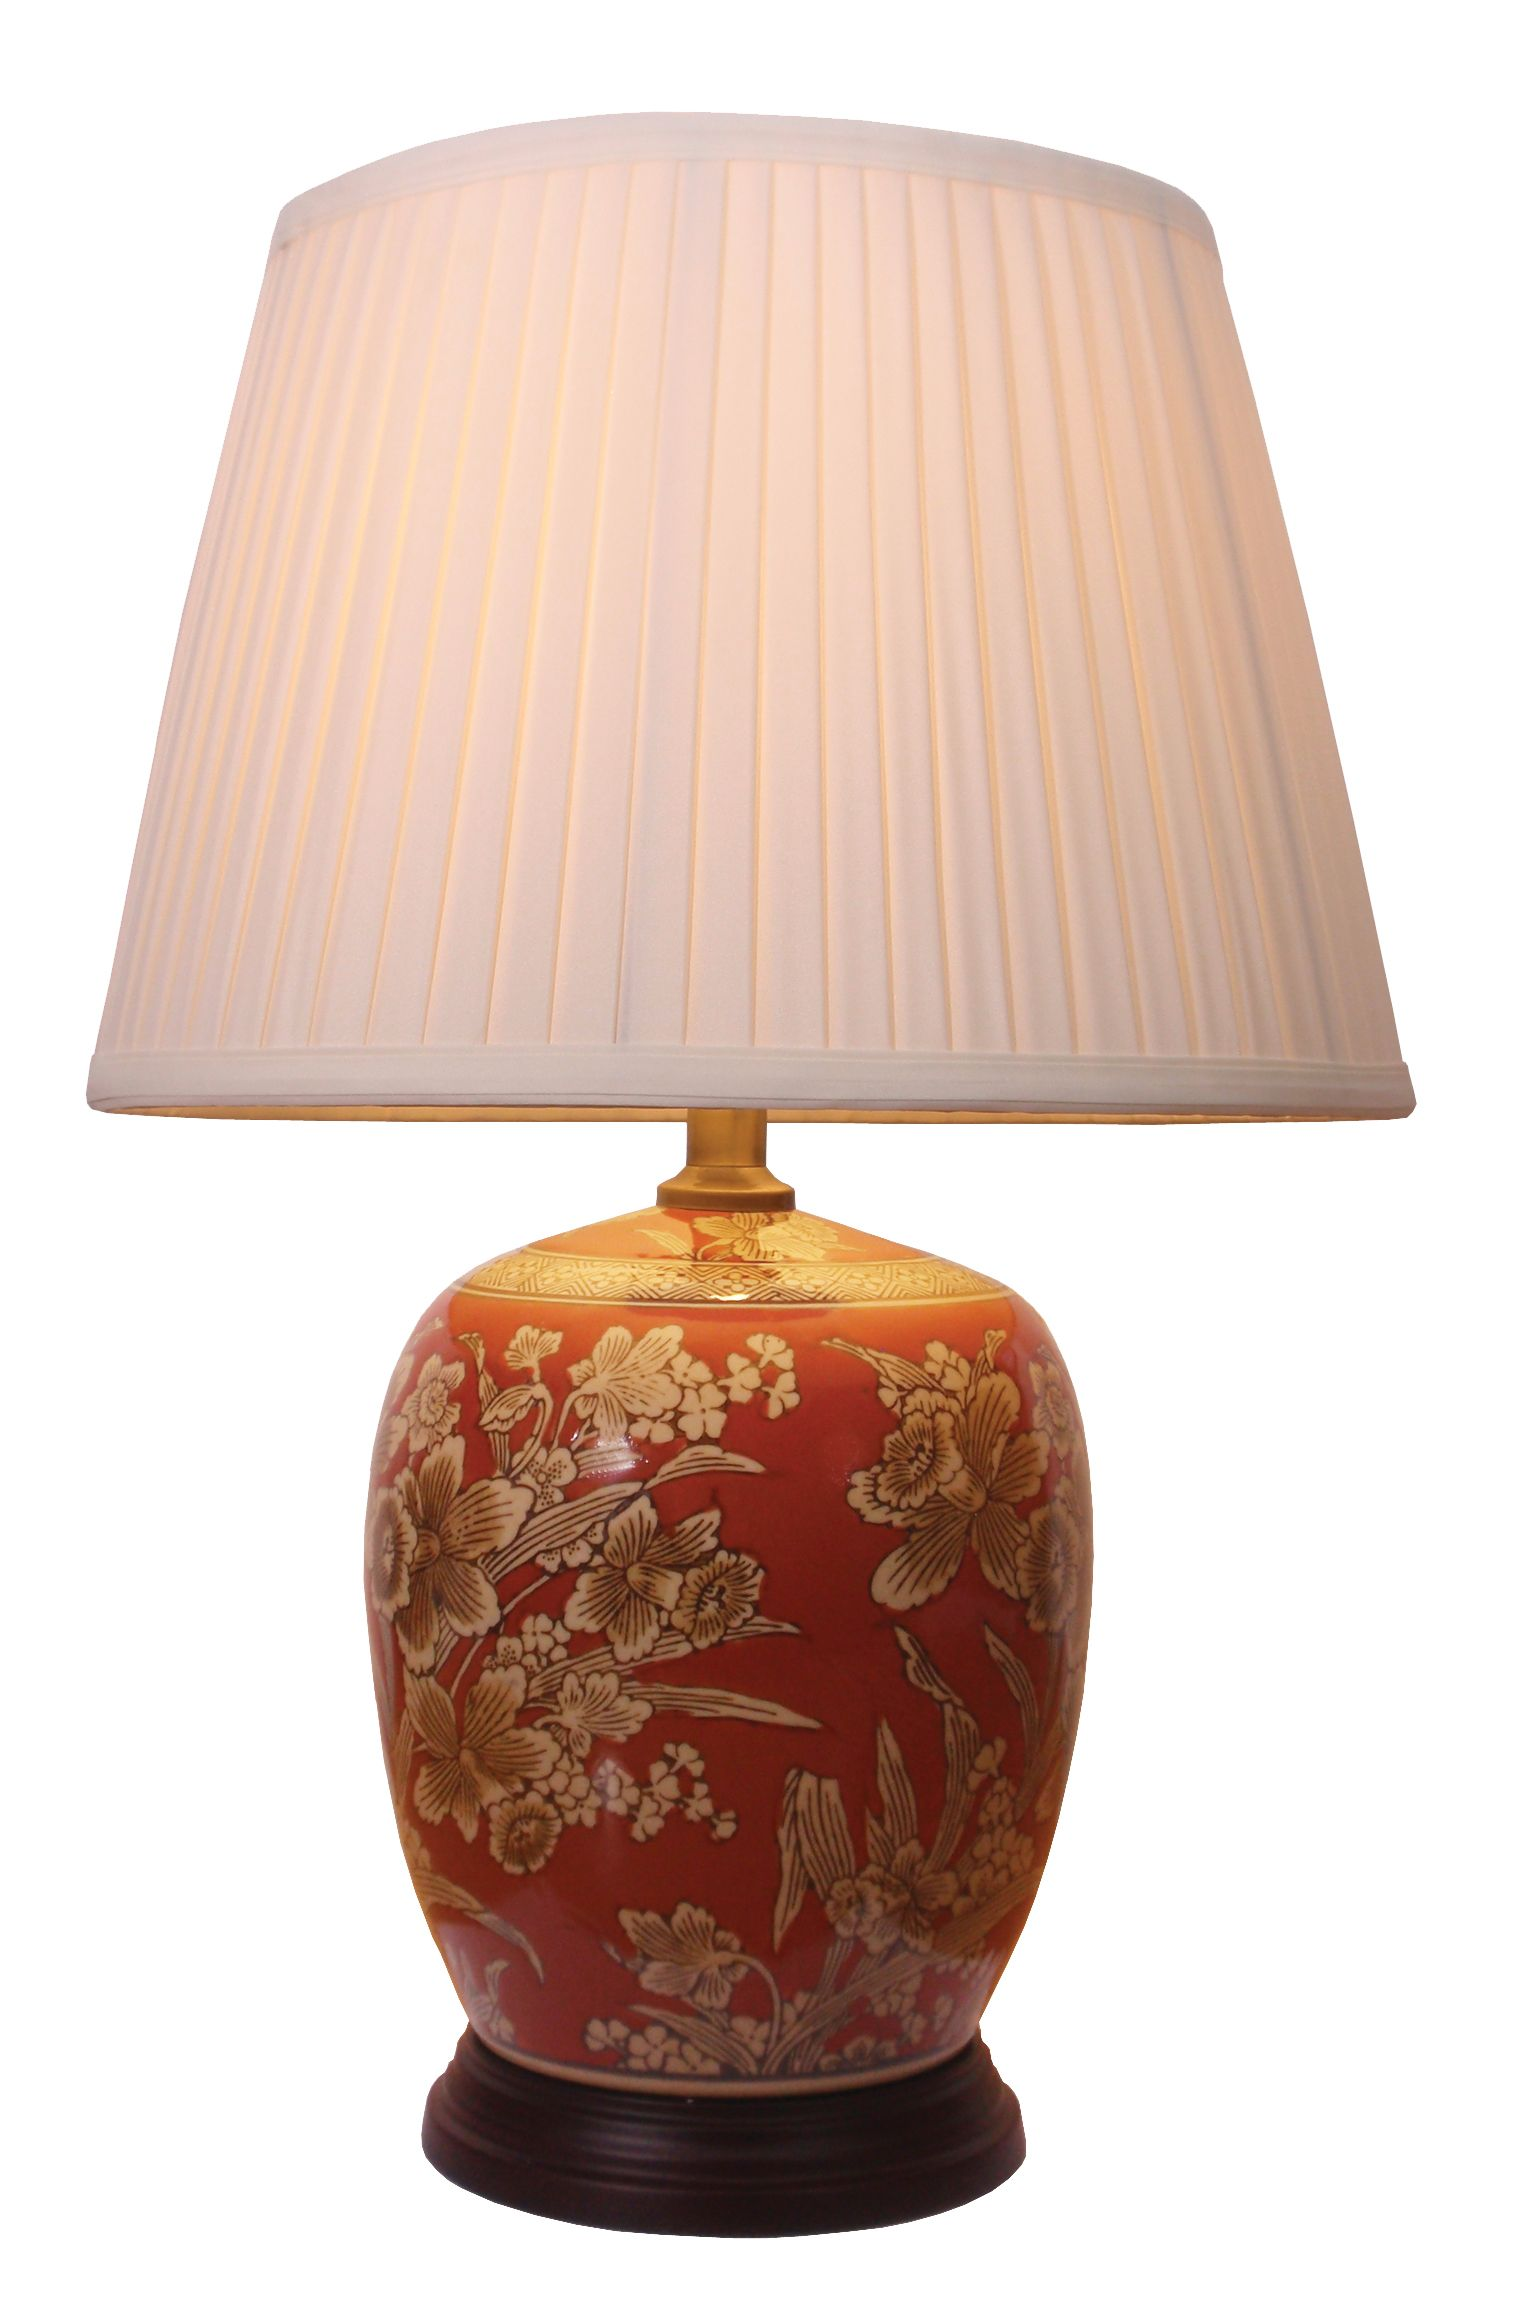 Chinese porcelain jar table lamp set in a lovely floral theme10 chinese porcelain jar table lamp set in a lovely floral theme10 inch 25cm mozeypictures Image collections